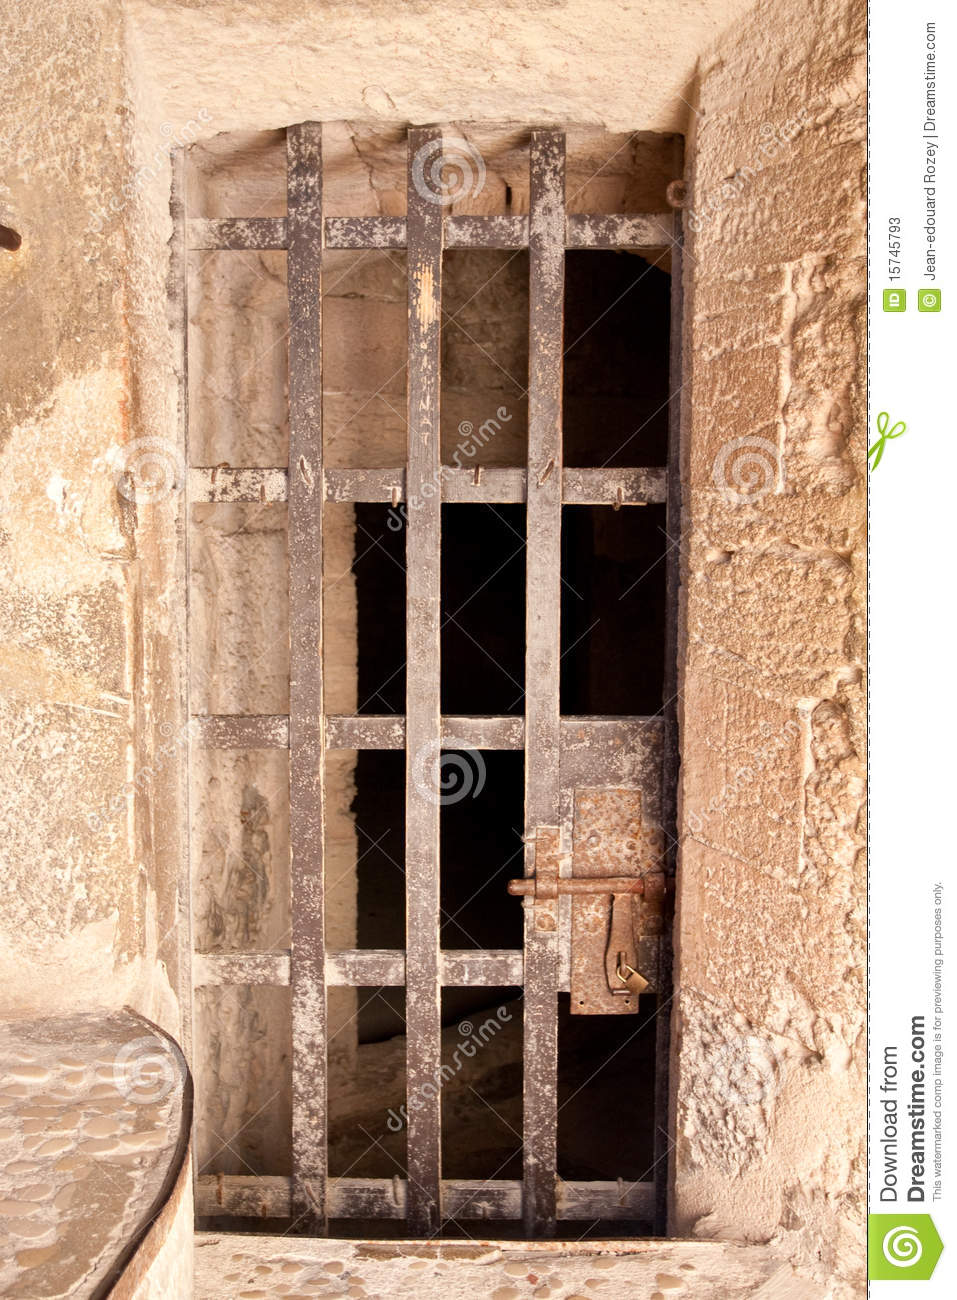 chateau d u0026 39 if stock image  image of mediterranean  prison